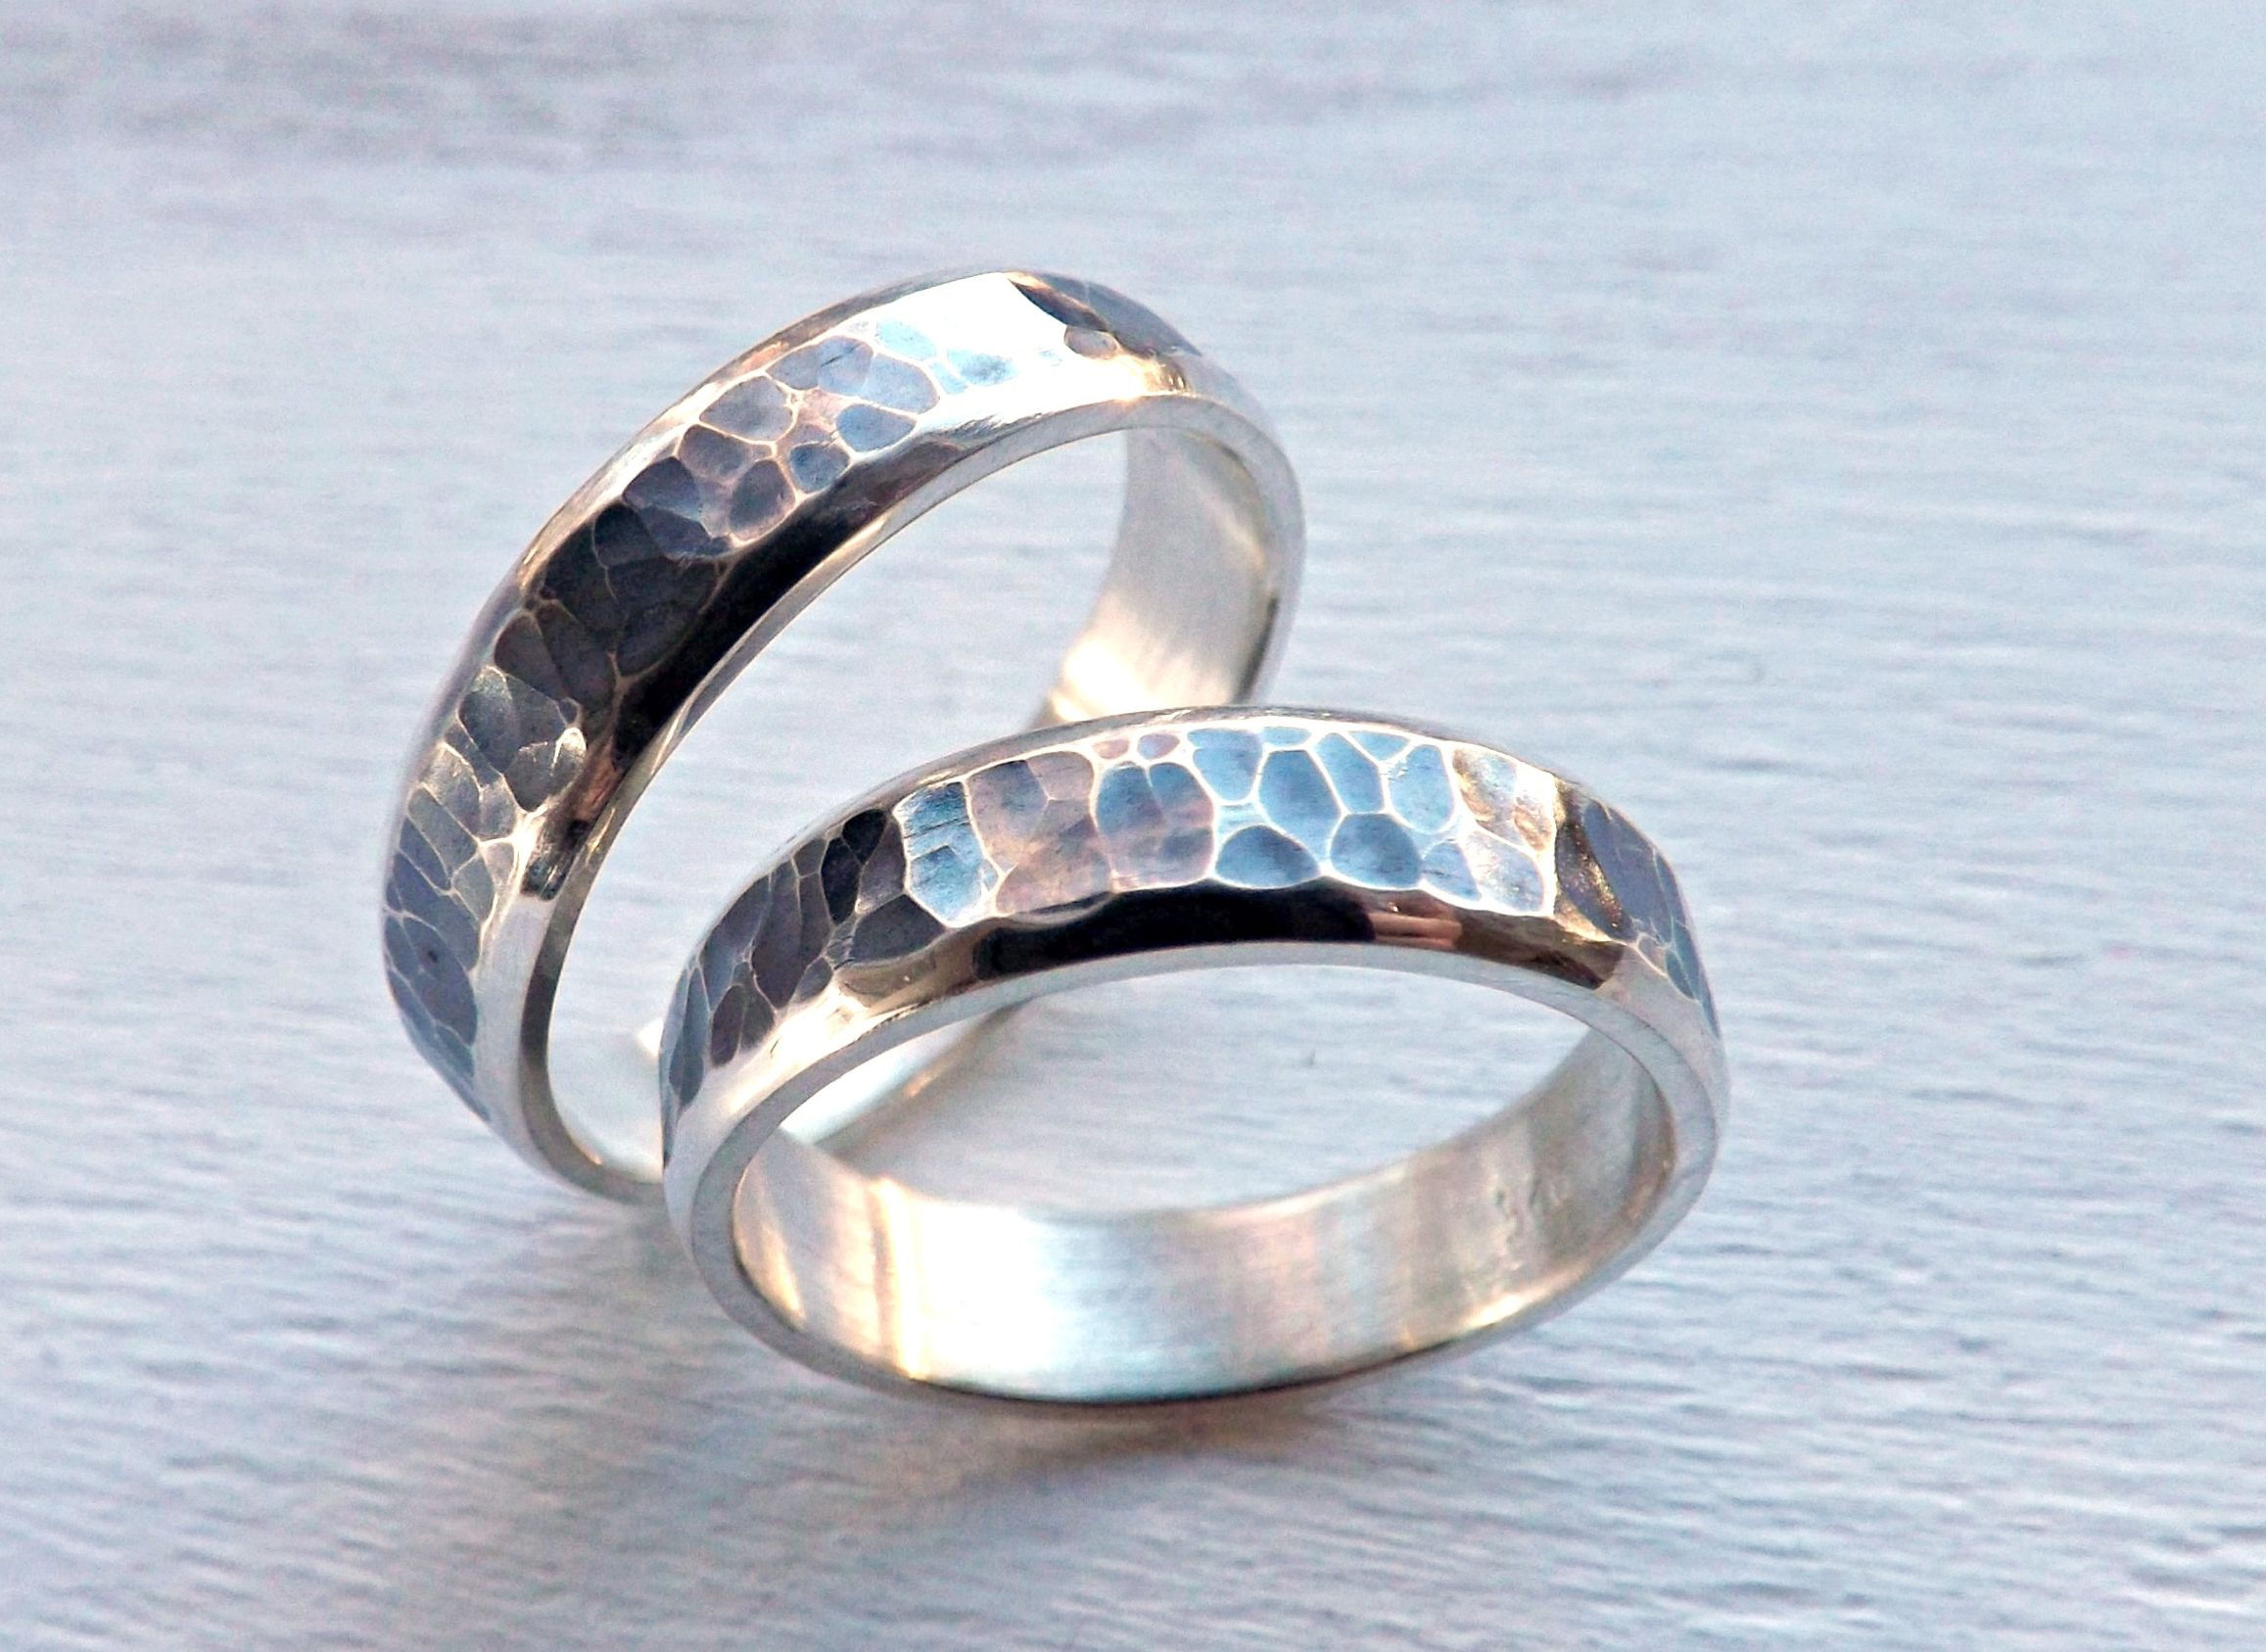 by handmade a silver rustic set ring custom wedding promise bands partially buy made matching oxidized crazyassjewelry ri rings